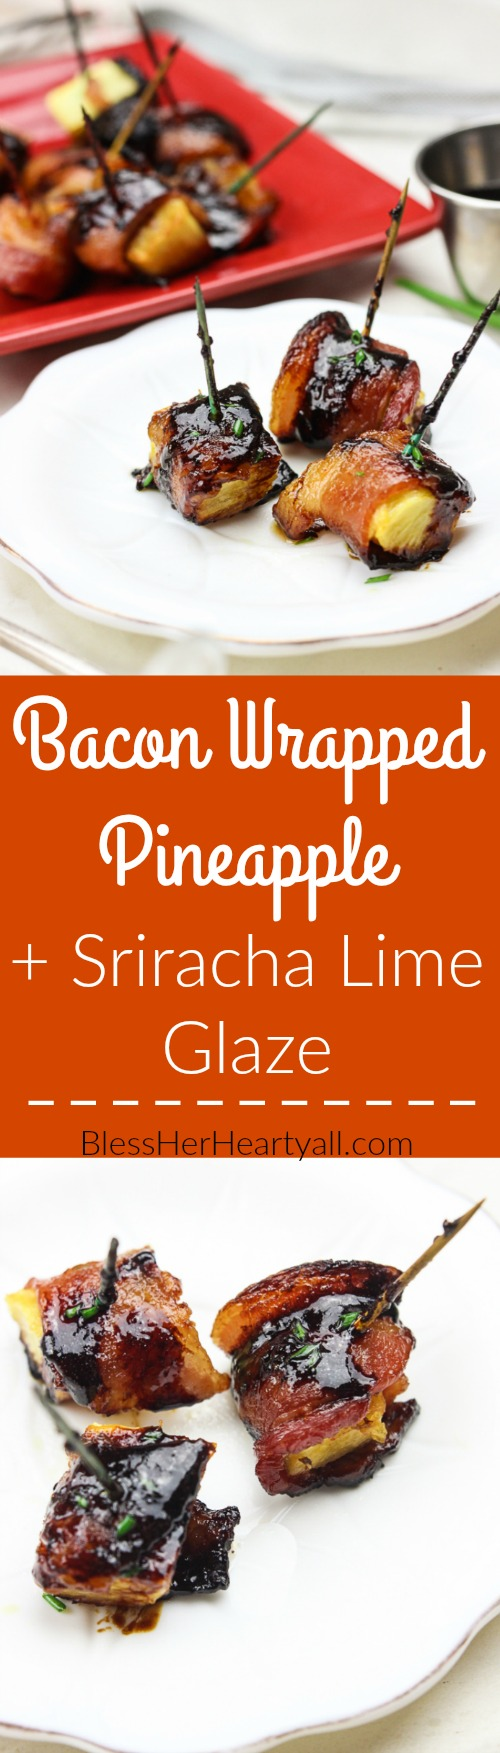 These bacon wrapped pineapple with sriracha lime glaze bites are an easy to-put-together appetizer for any party! Juicy pineapple is wrapped up in thick-cut applewood smoked bacon and then drizzled with a sriracha lime glaze before being baked in the oven to sweet and savory perfection! Yum! www.BlessHerHeartYall.com